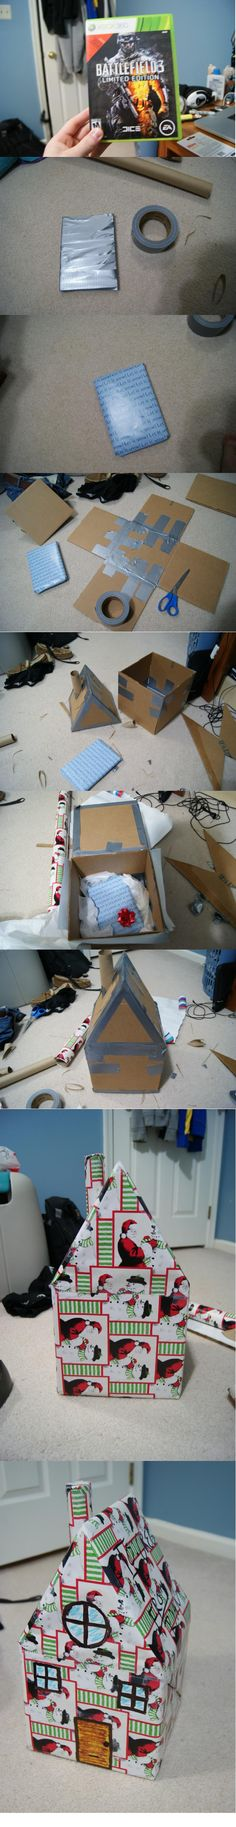 Am I wrapping this correctly? - Imgur